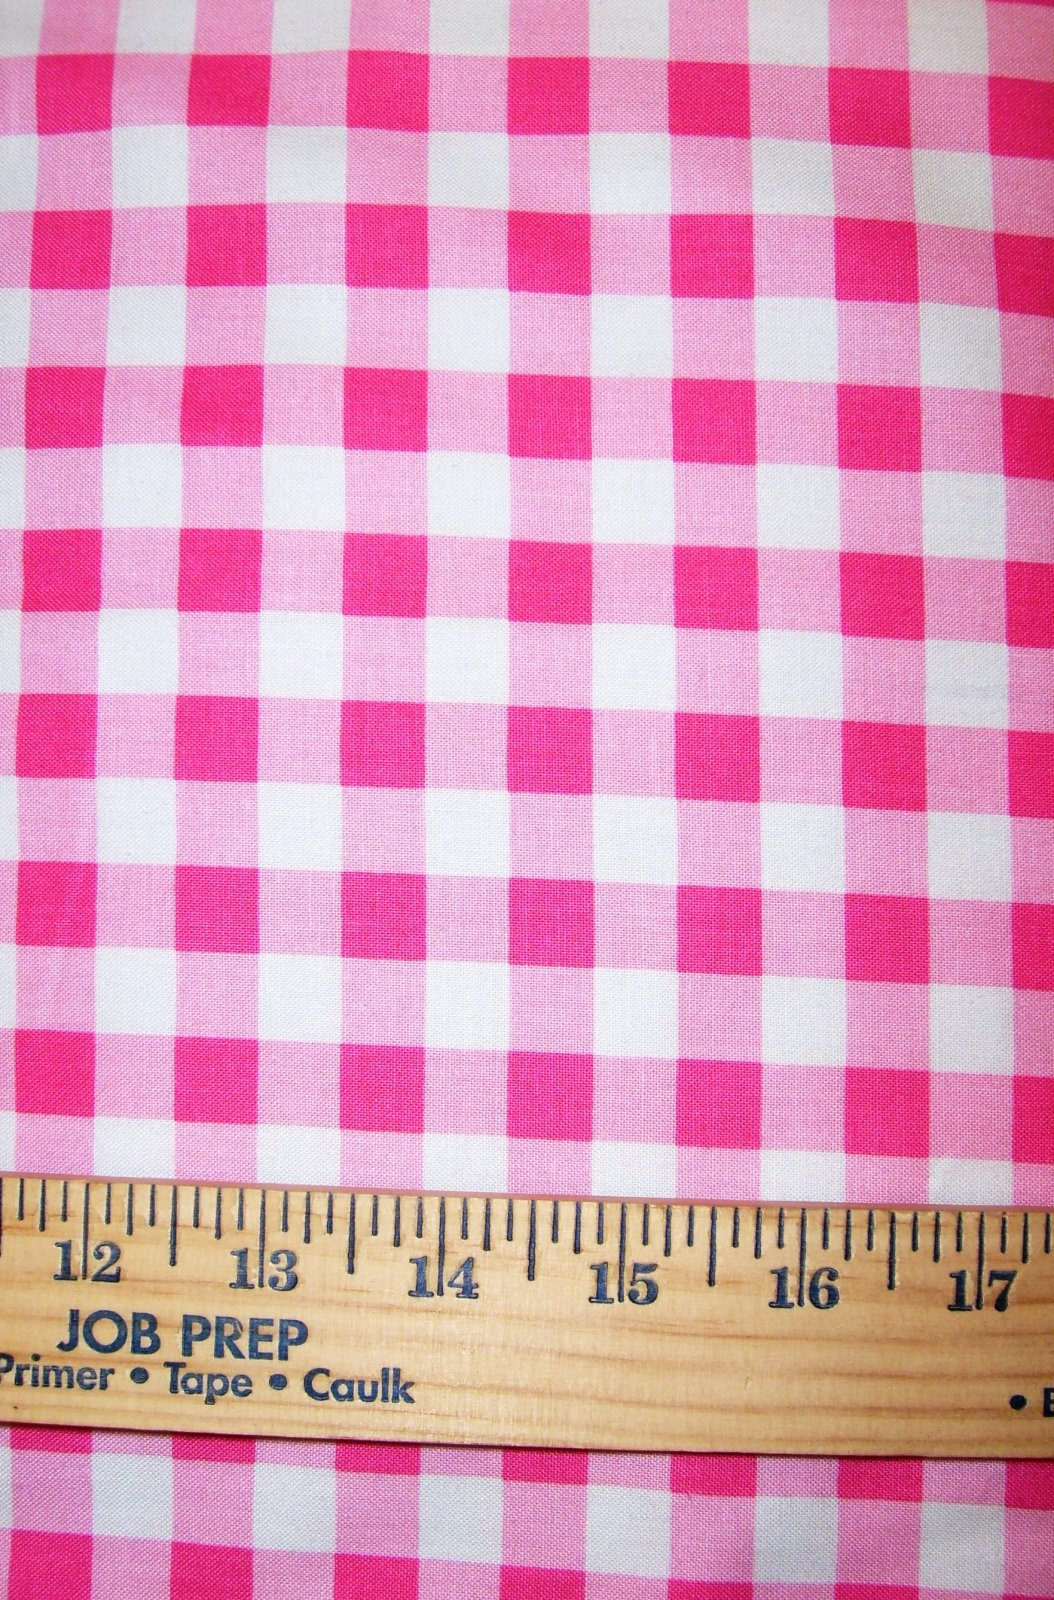 Gingham Checks Pink 1/2 29397-4